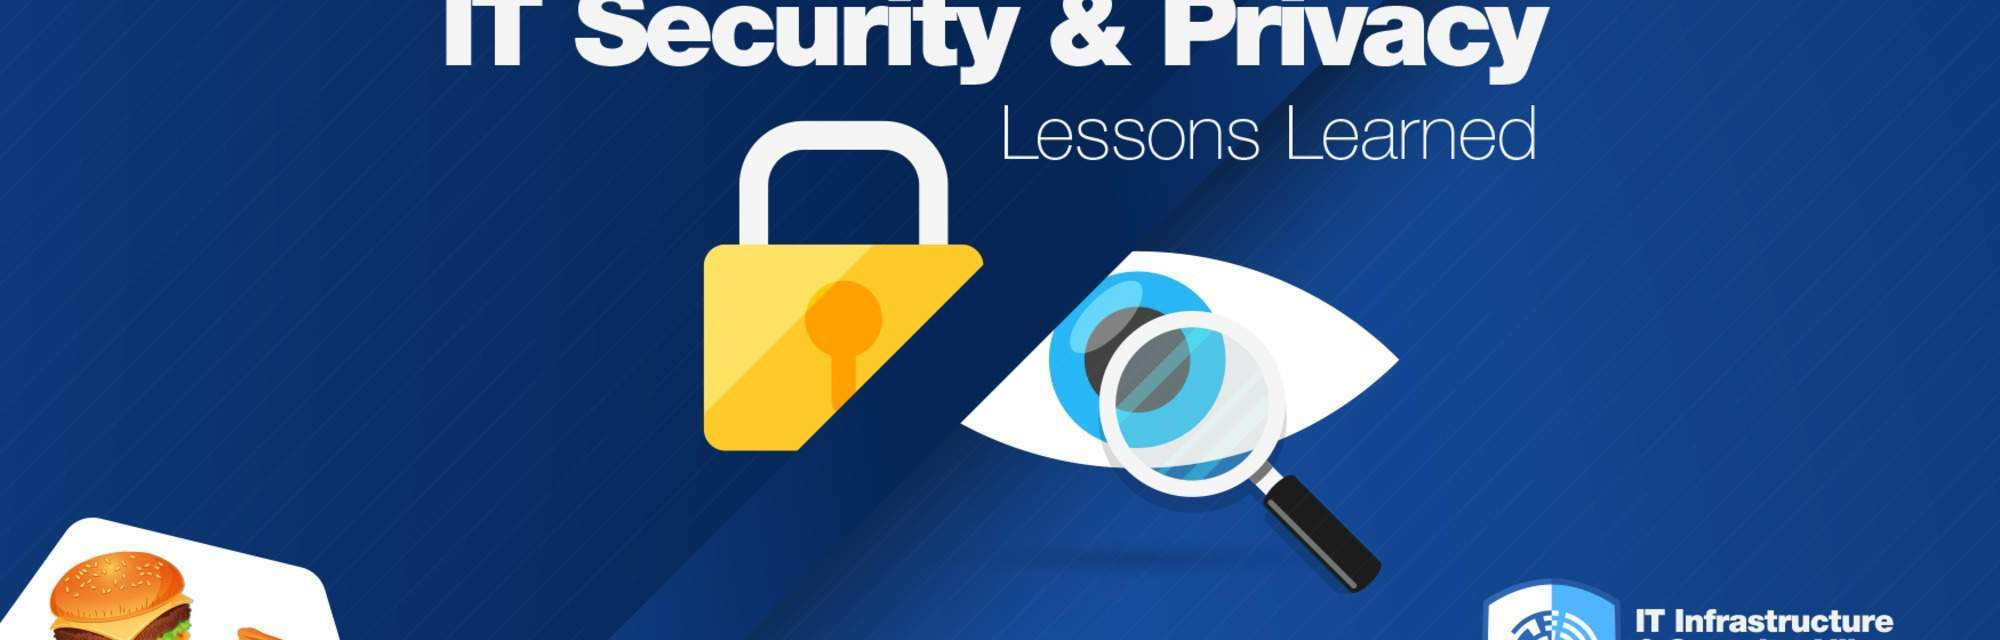 IT Security & Privacy event banner